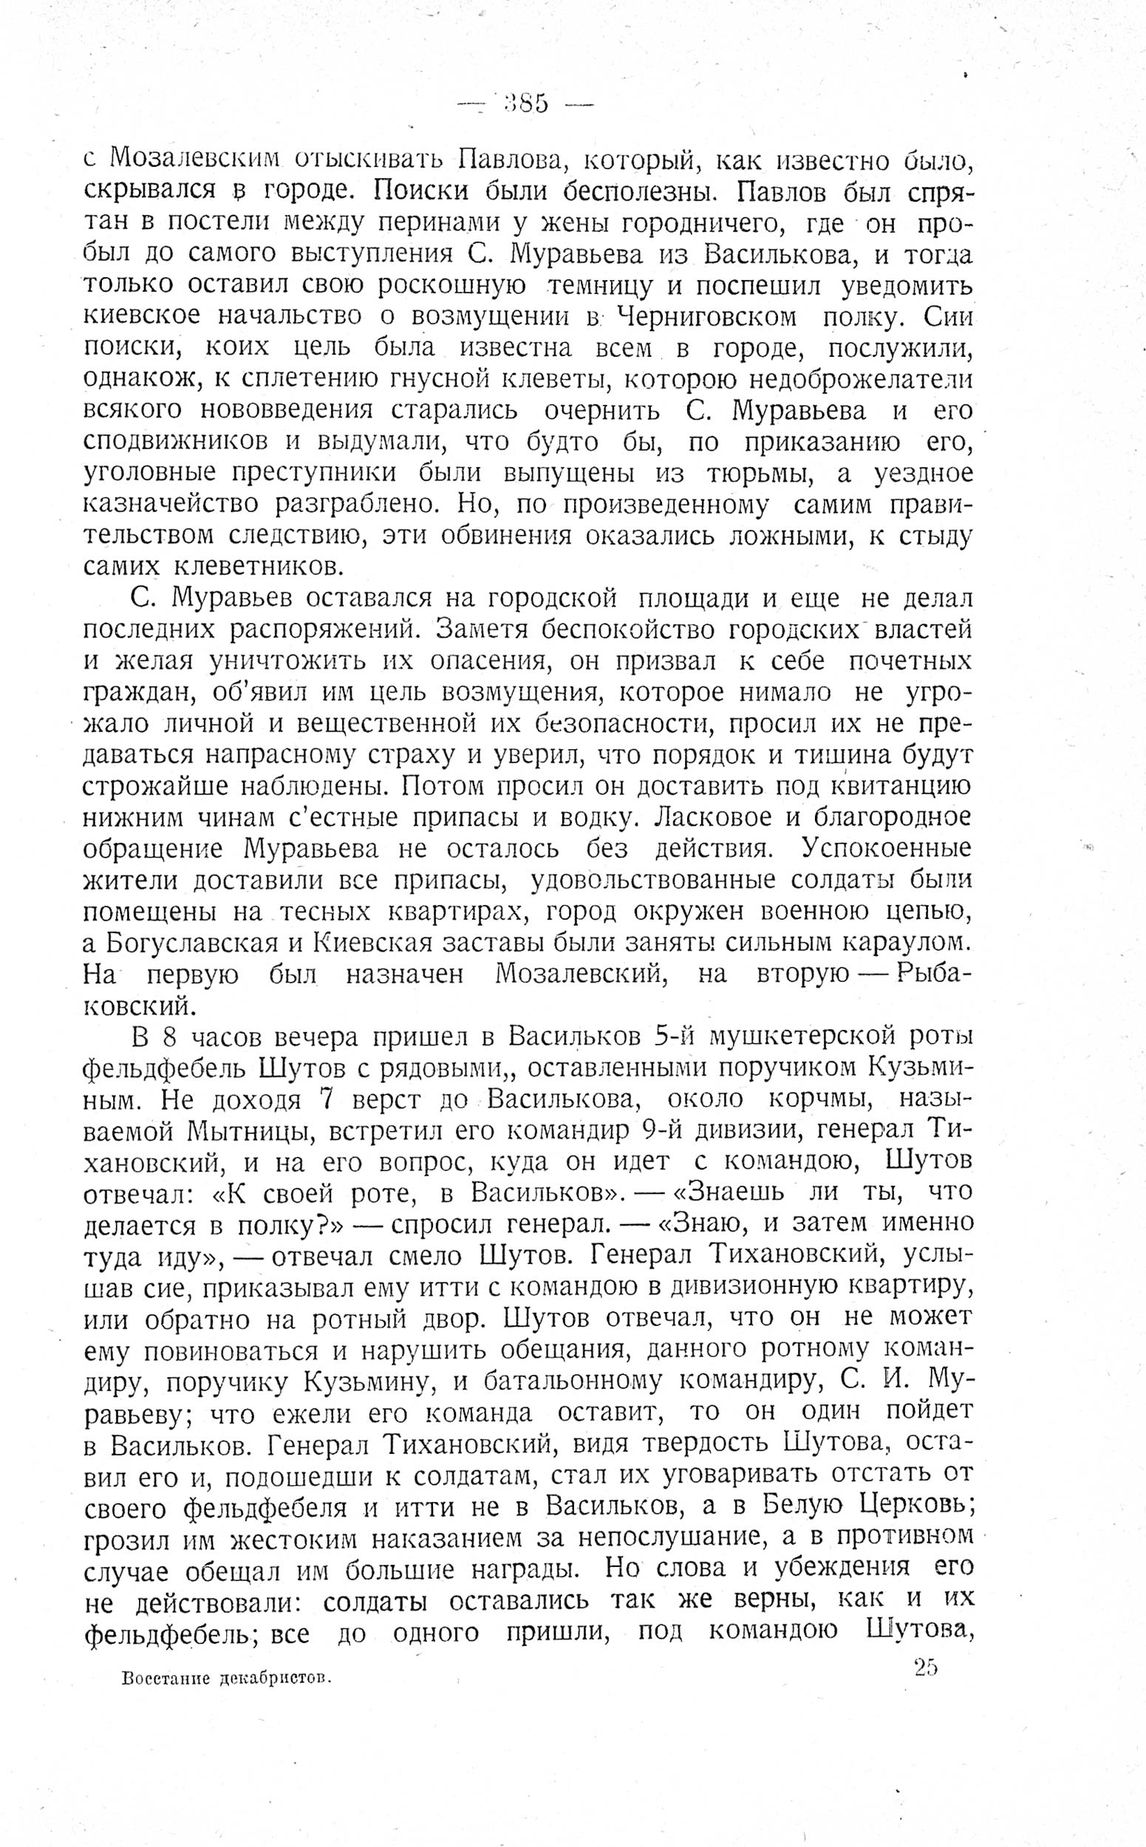 http://elib.shpl.ru/pages/625968/zooms/7